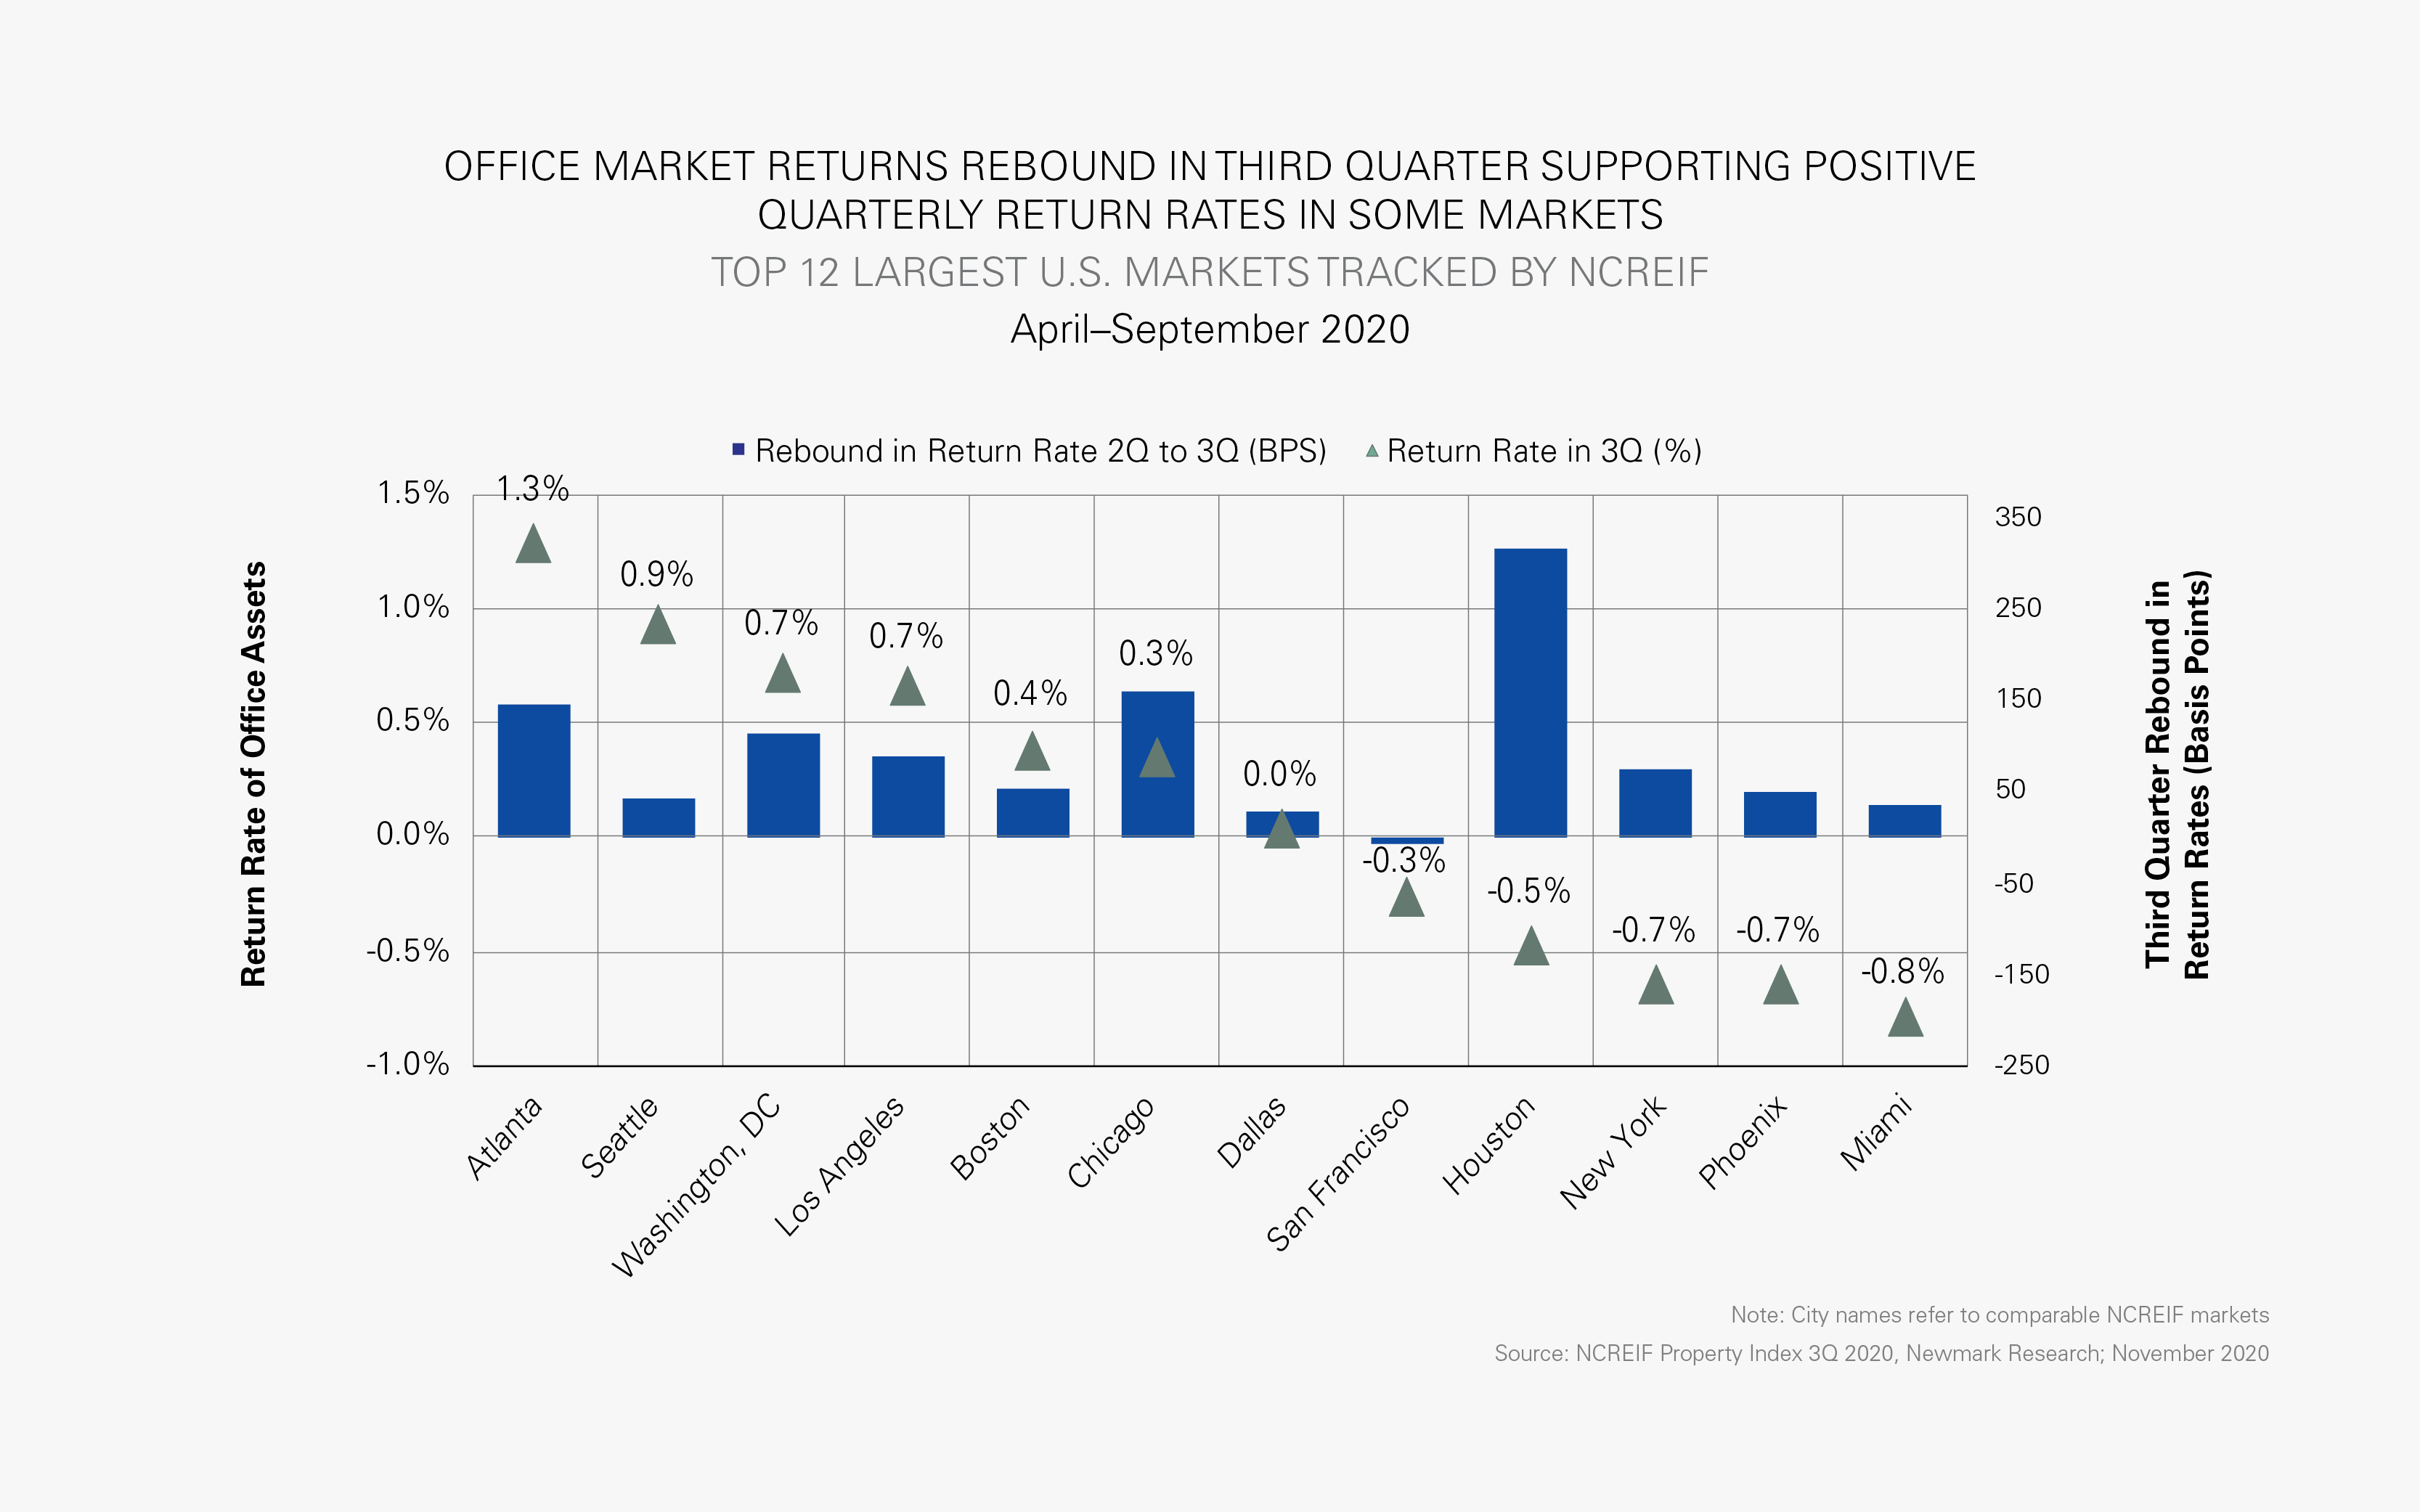 TOP 12 LARGEST U.S. MARKETS TRACKED BY NCREIF